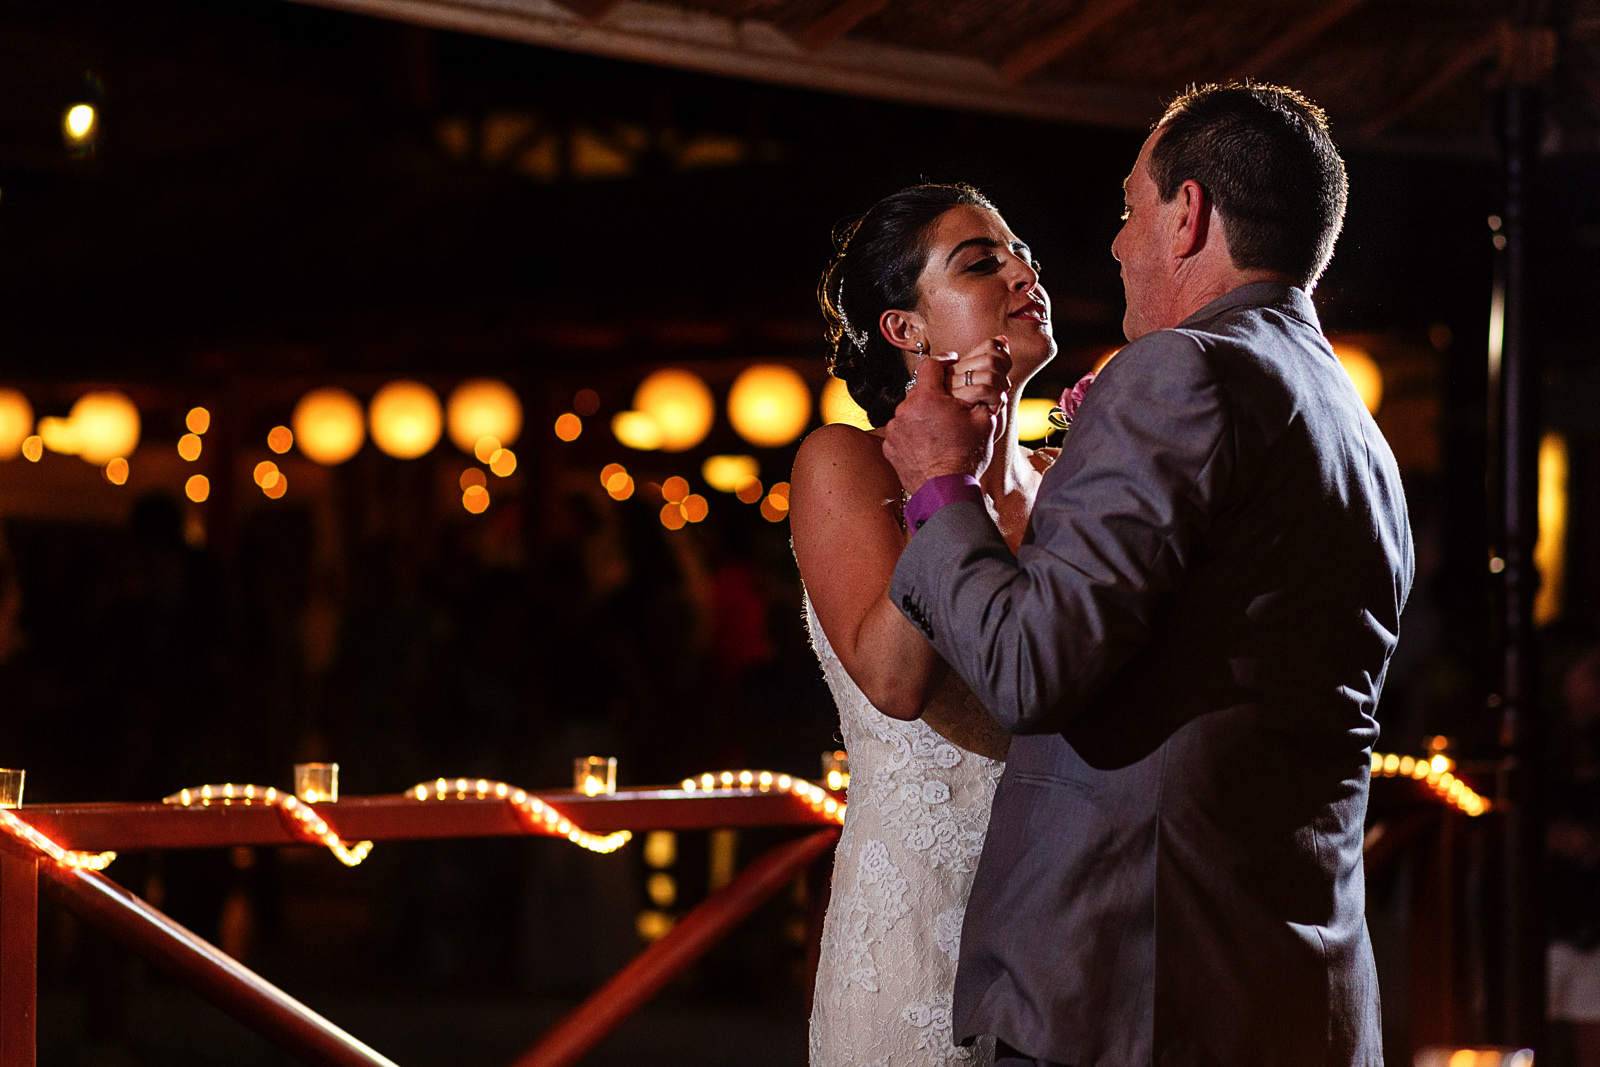 father-bride-dance-bookeh-lights-wedding.jpg